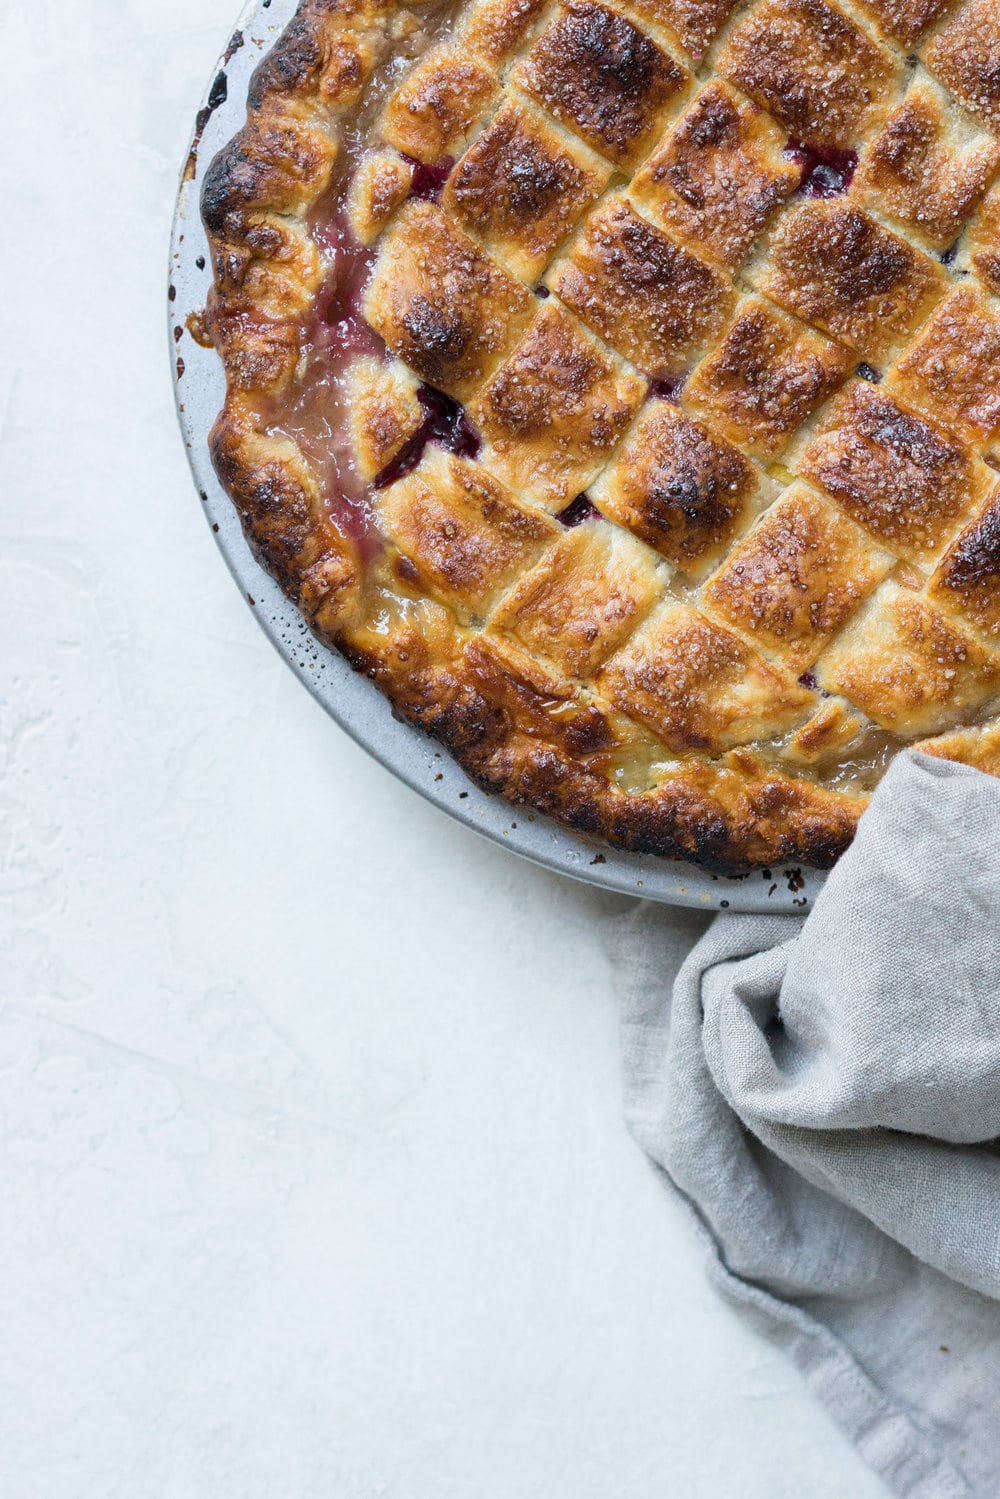 Peach and blueberry pie. The epitome of summer - flavourful fruit, held together in a flaky tender crust, elevated by a touch of sugar. The perfect summer dessert - when you have amazing fruit, you can keep things simple. #peachpie #blueberrypie #homemadepie #fruitpie #piedough #pierecipe #latticepie #peachandblueberrypie